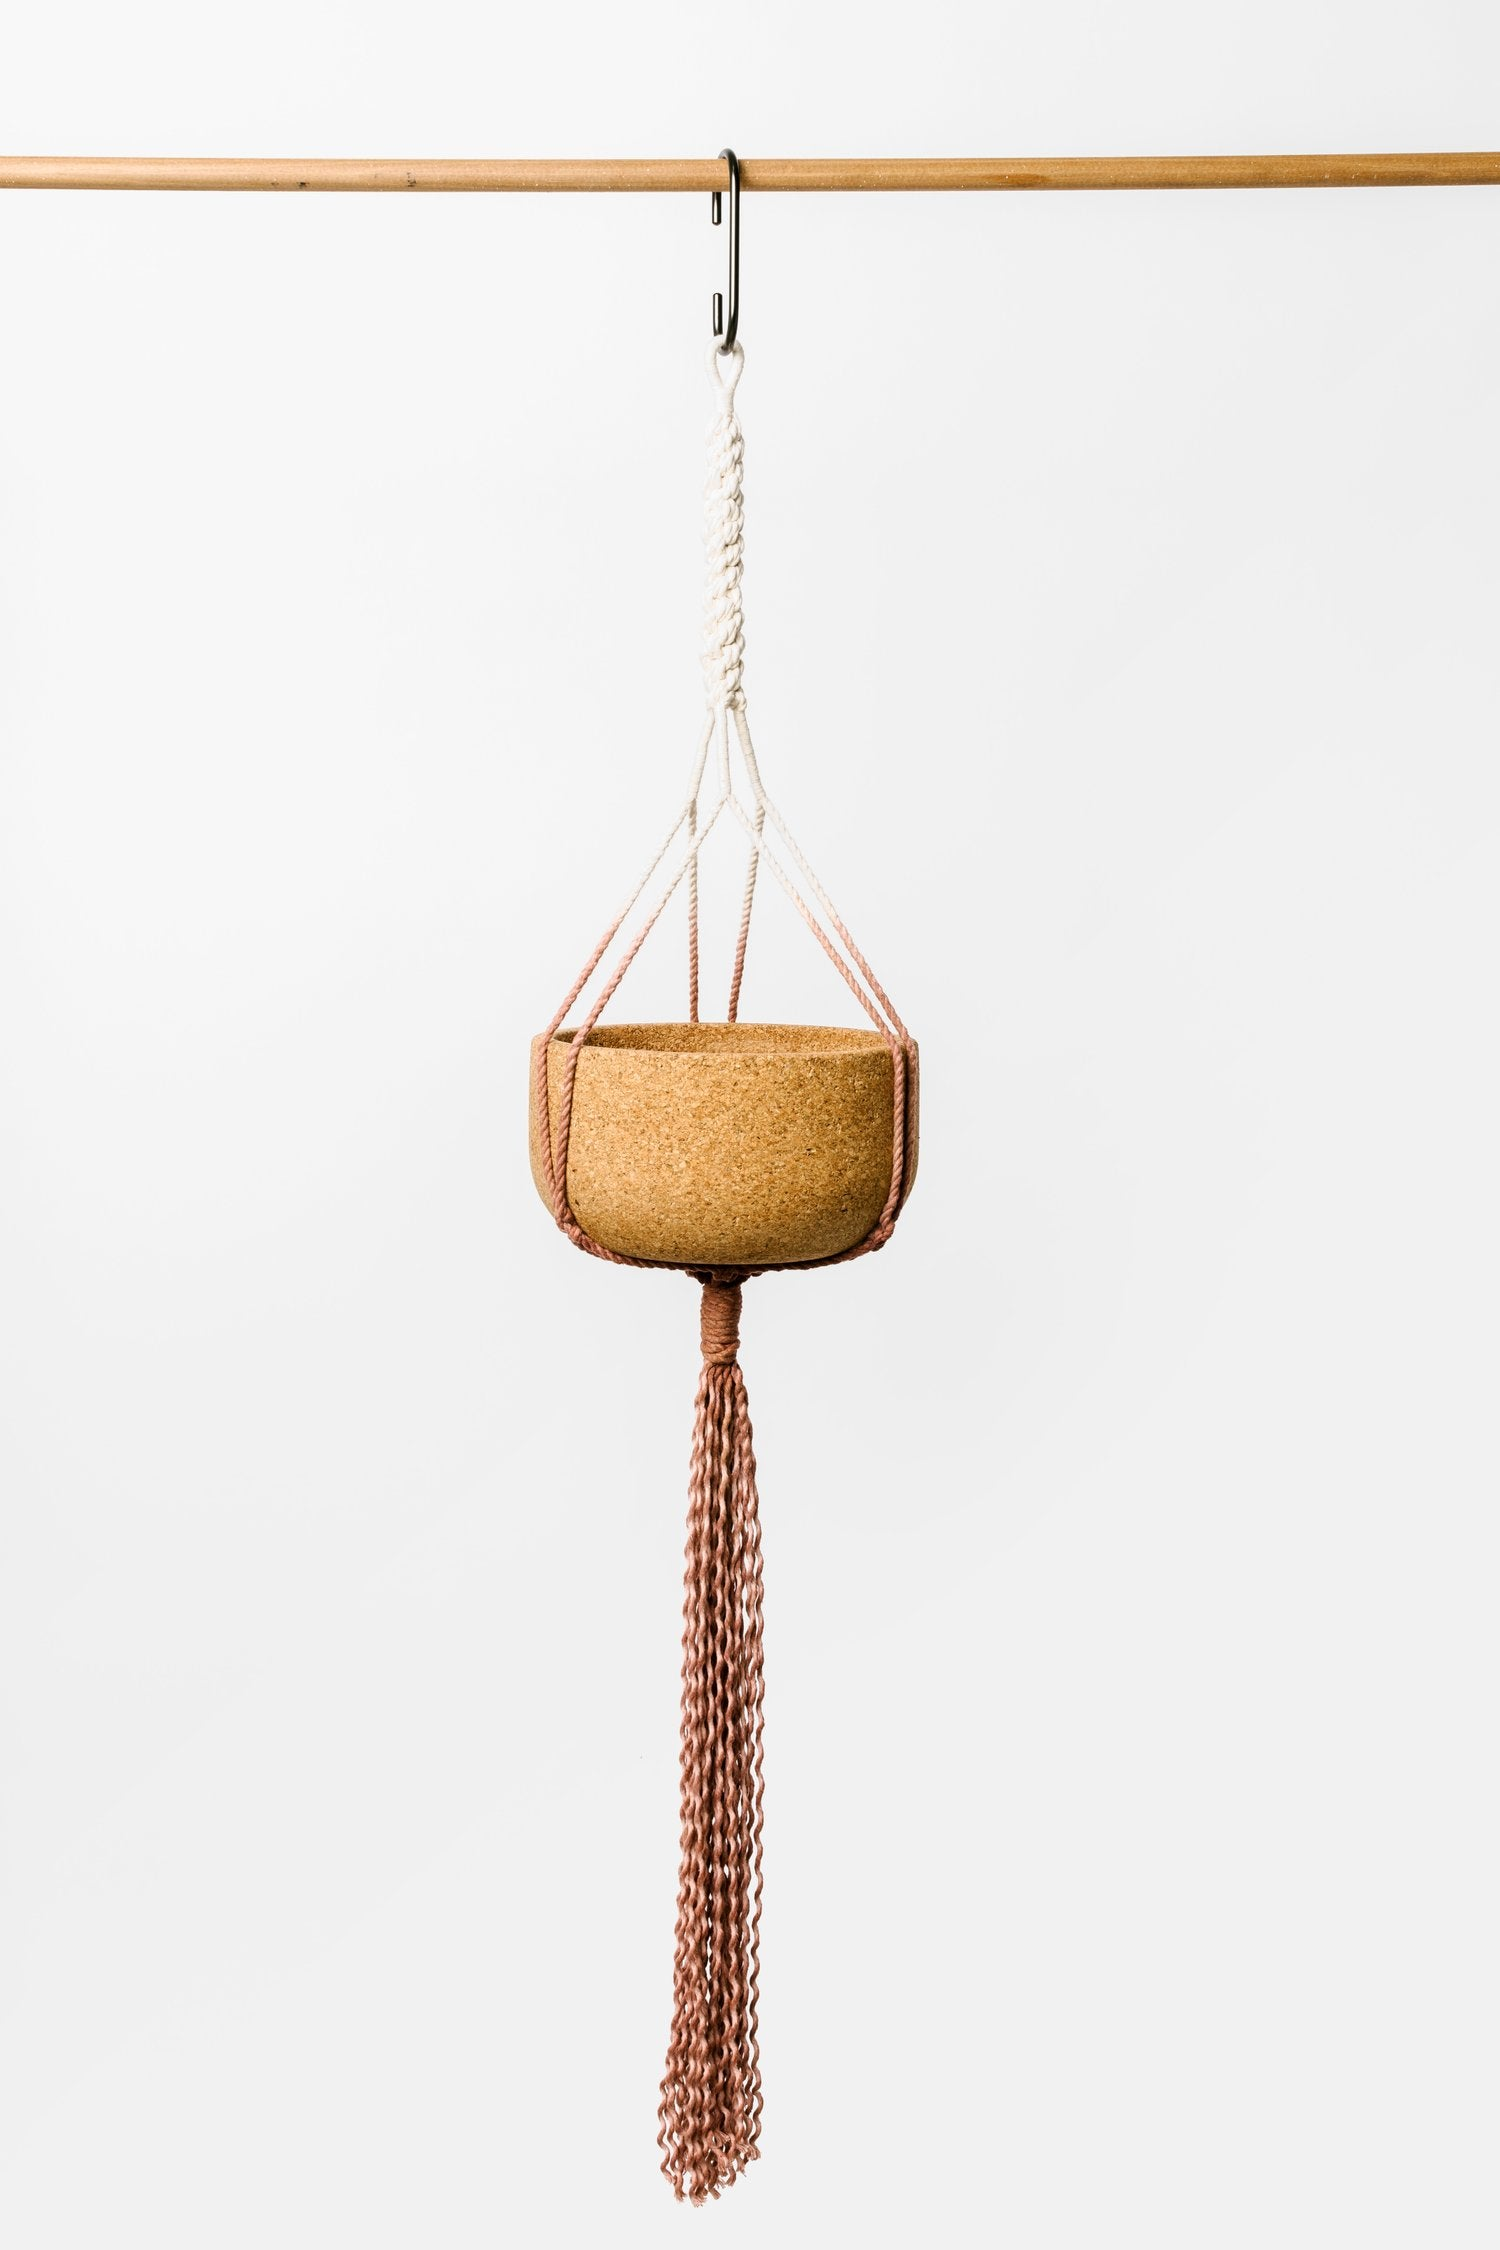 Ombre Macrame Hanging Cork Planter Limited Edition Collab with S. Kim